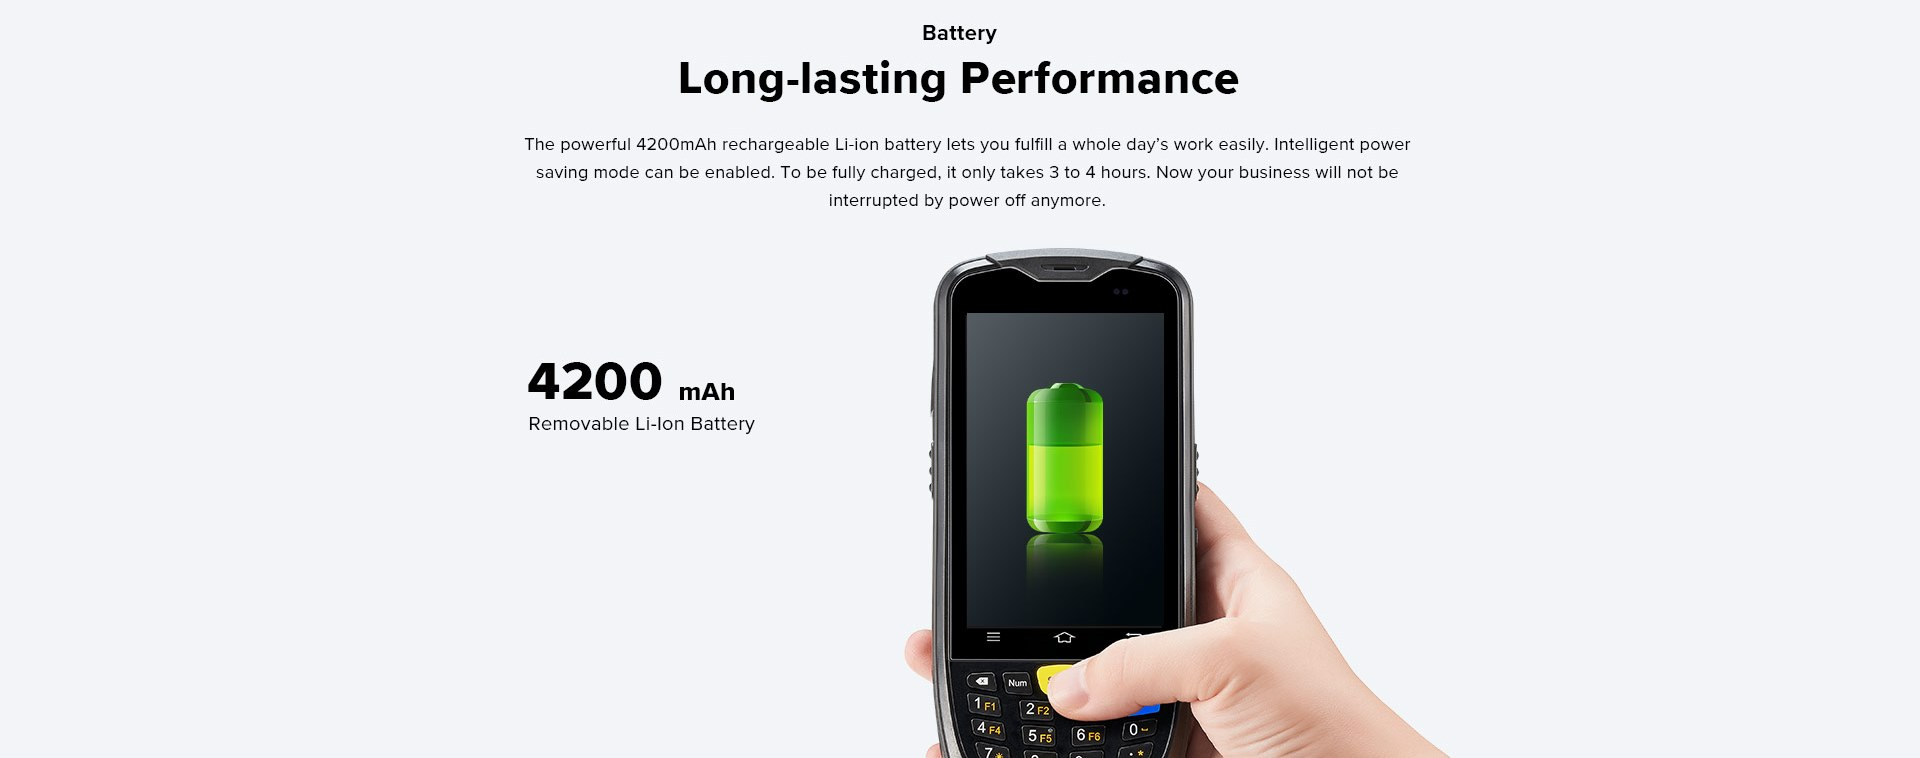 C6000 Rugged Handheld Computer Android - rechargeable Li-ion battery